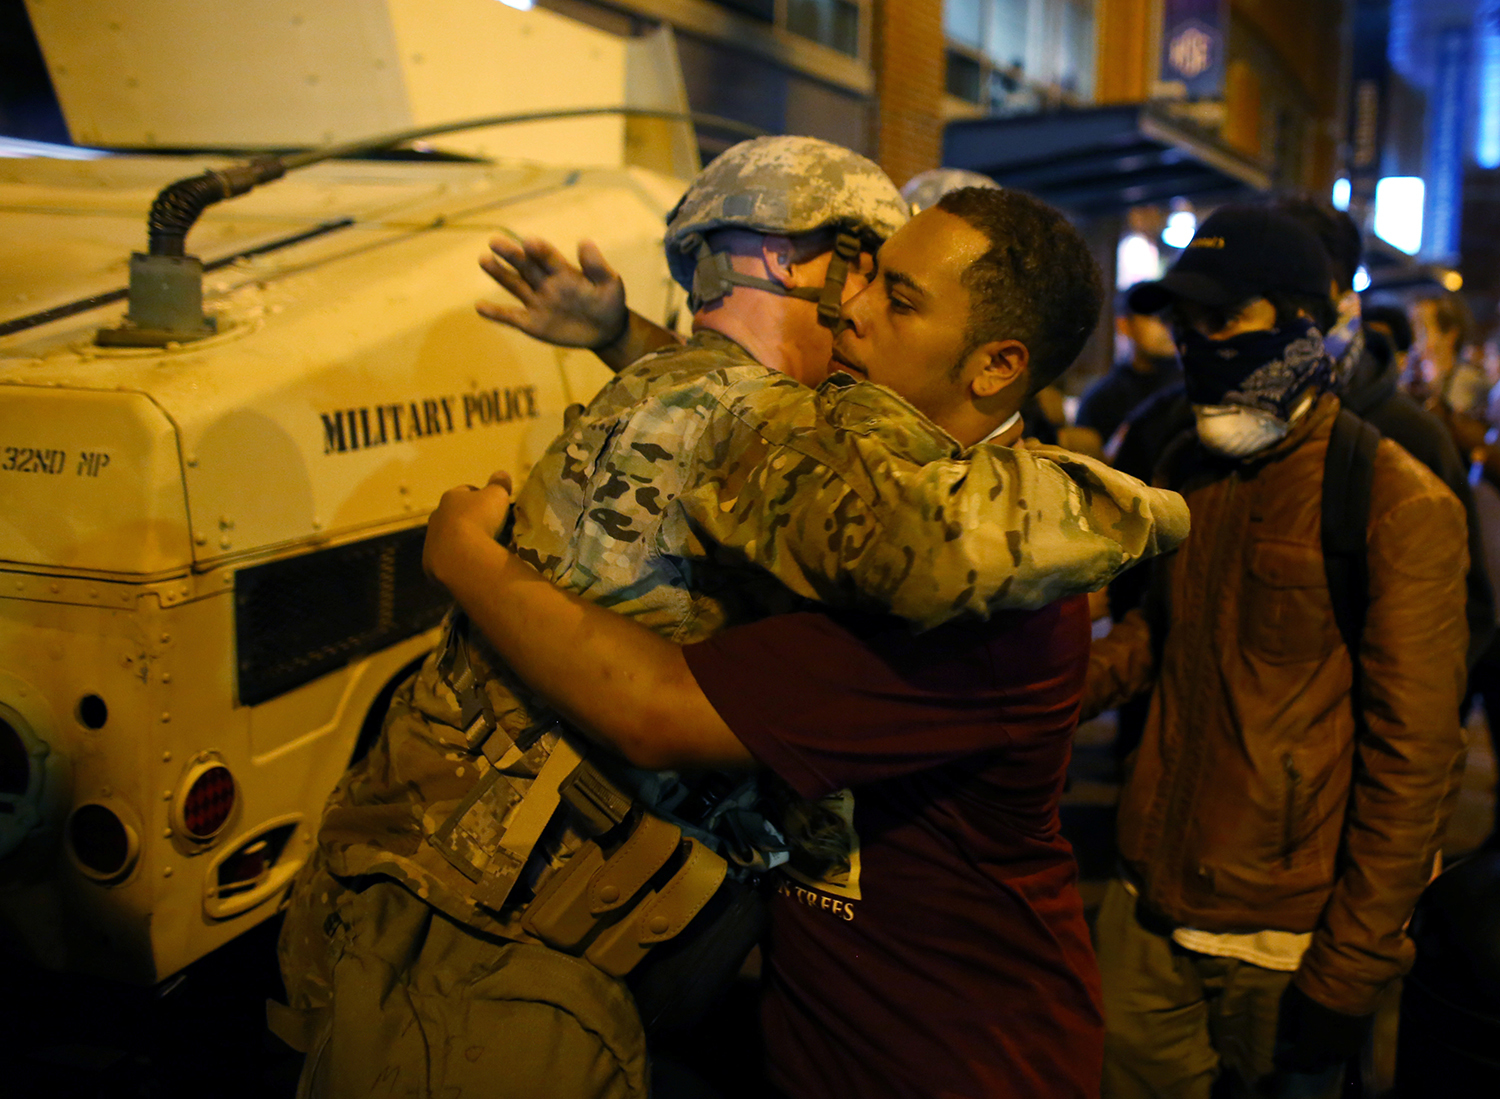 CHARLOTTE 2016-09-23 A U.S. National guard soldier accepts a hug from protester as people march through downtown to protest the police shooting of Keith Scott in Charlotte, North Carolina, U.S., September 22, 2016.     REUTERS/Mike Blake     TPX IMAGES OF THE DAY Photo:  / REUTERS / TT / kod 72000